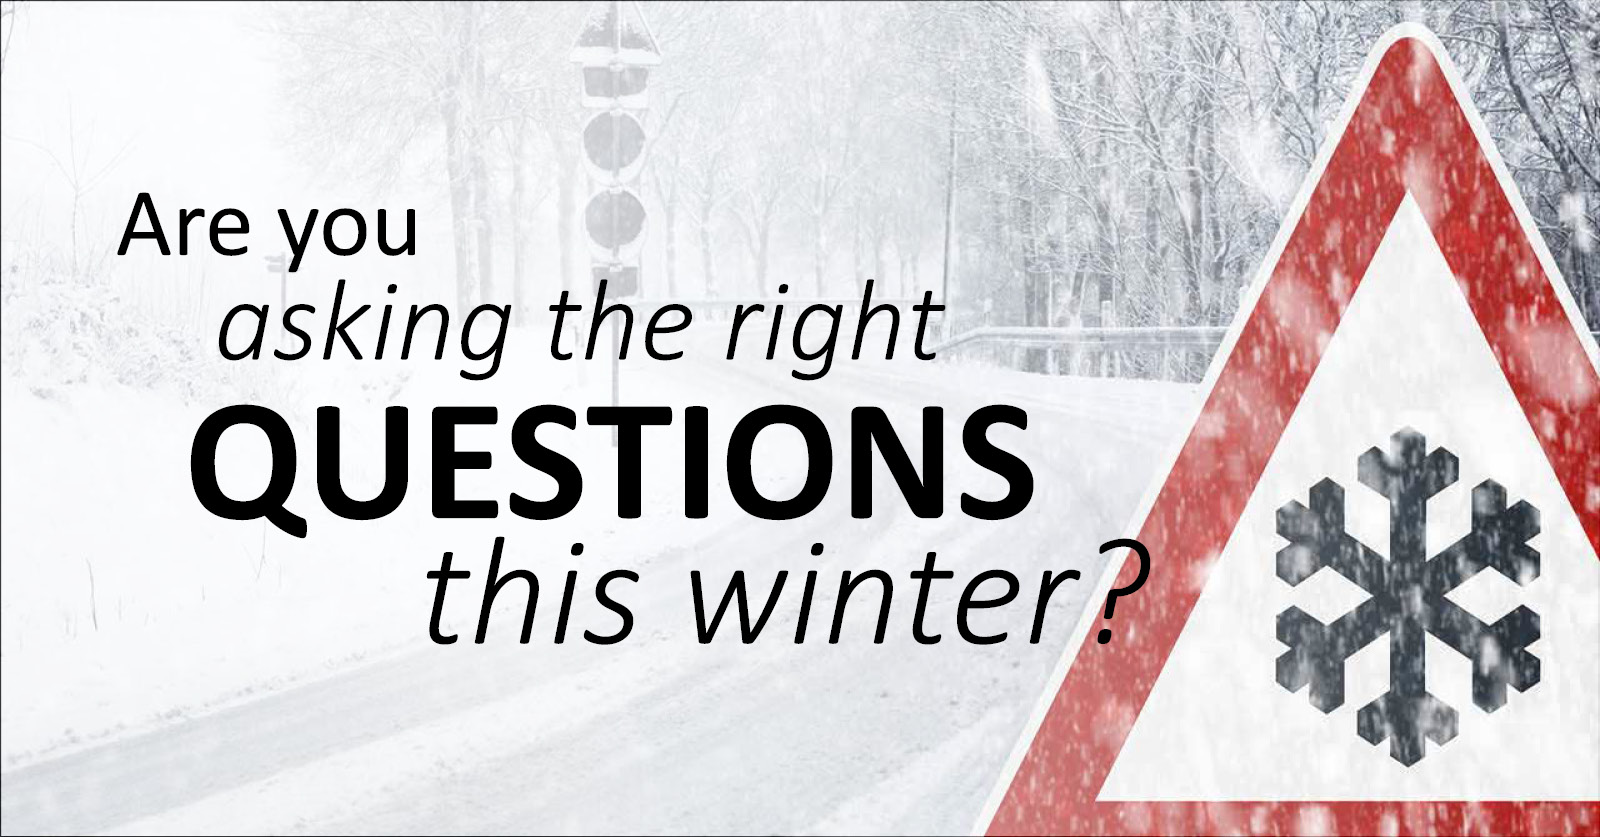 Are you asking the right questions this winter?